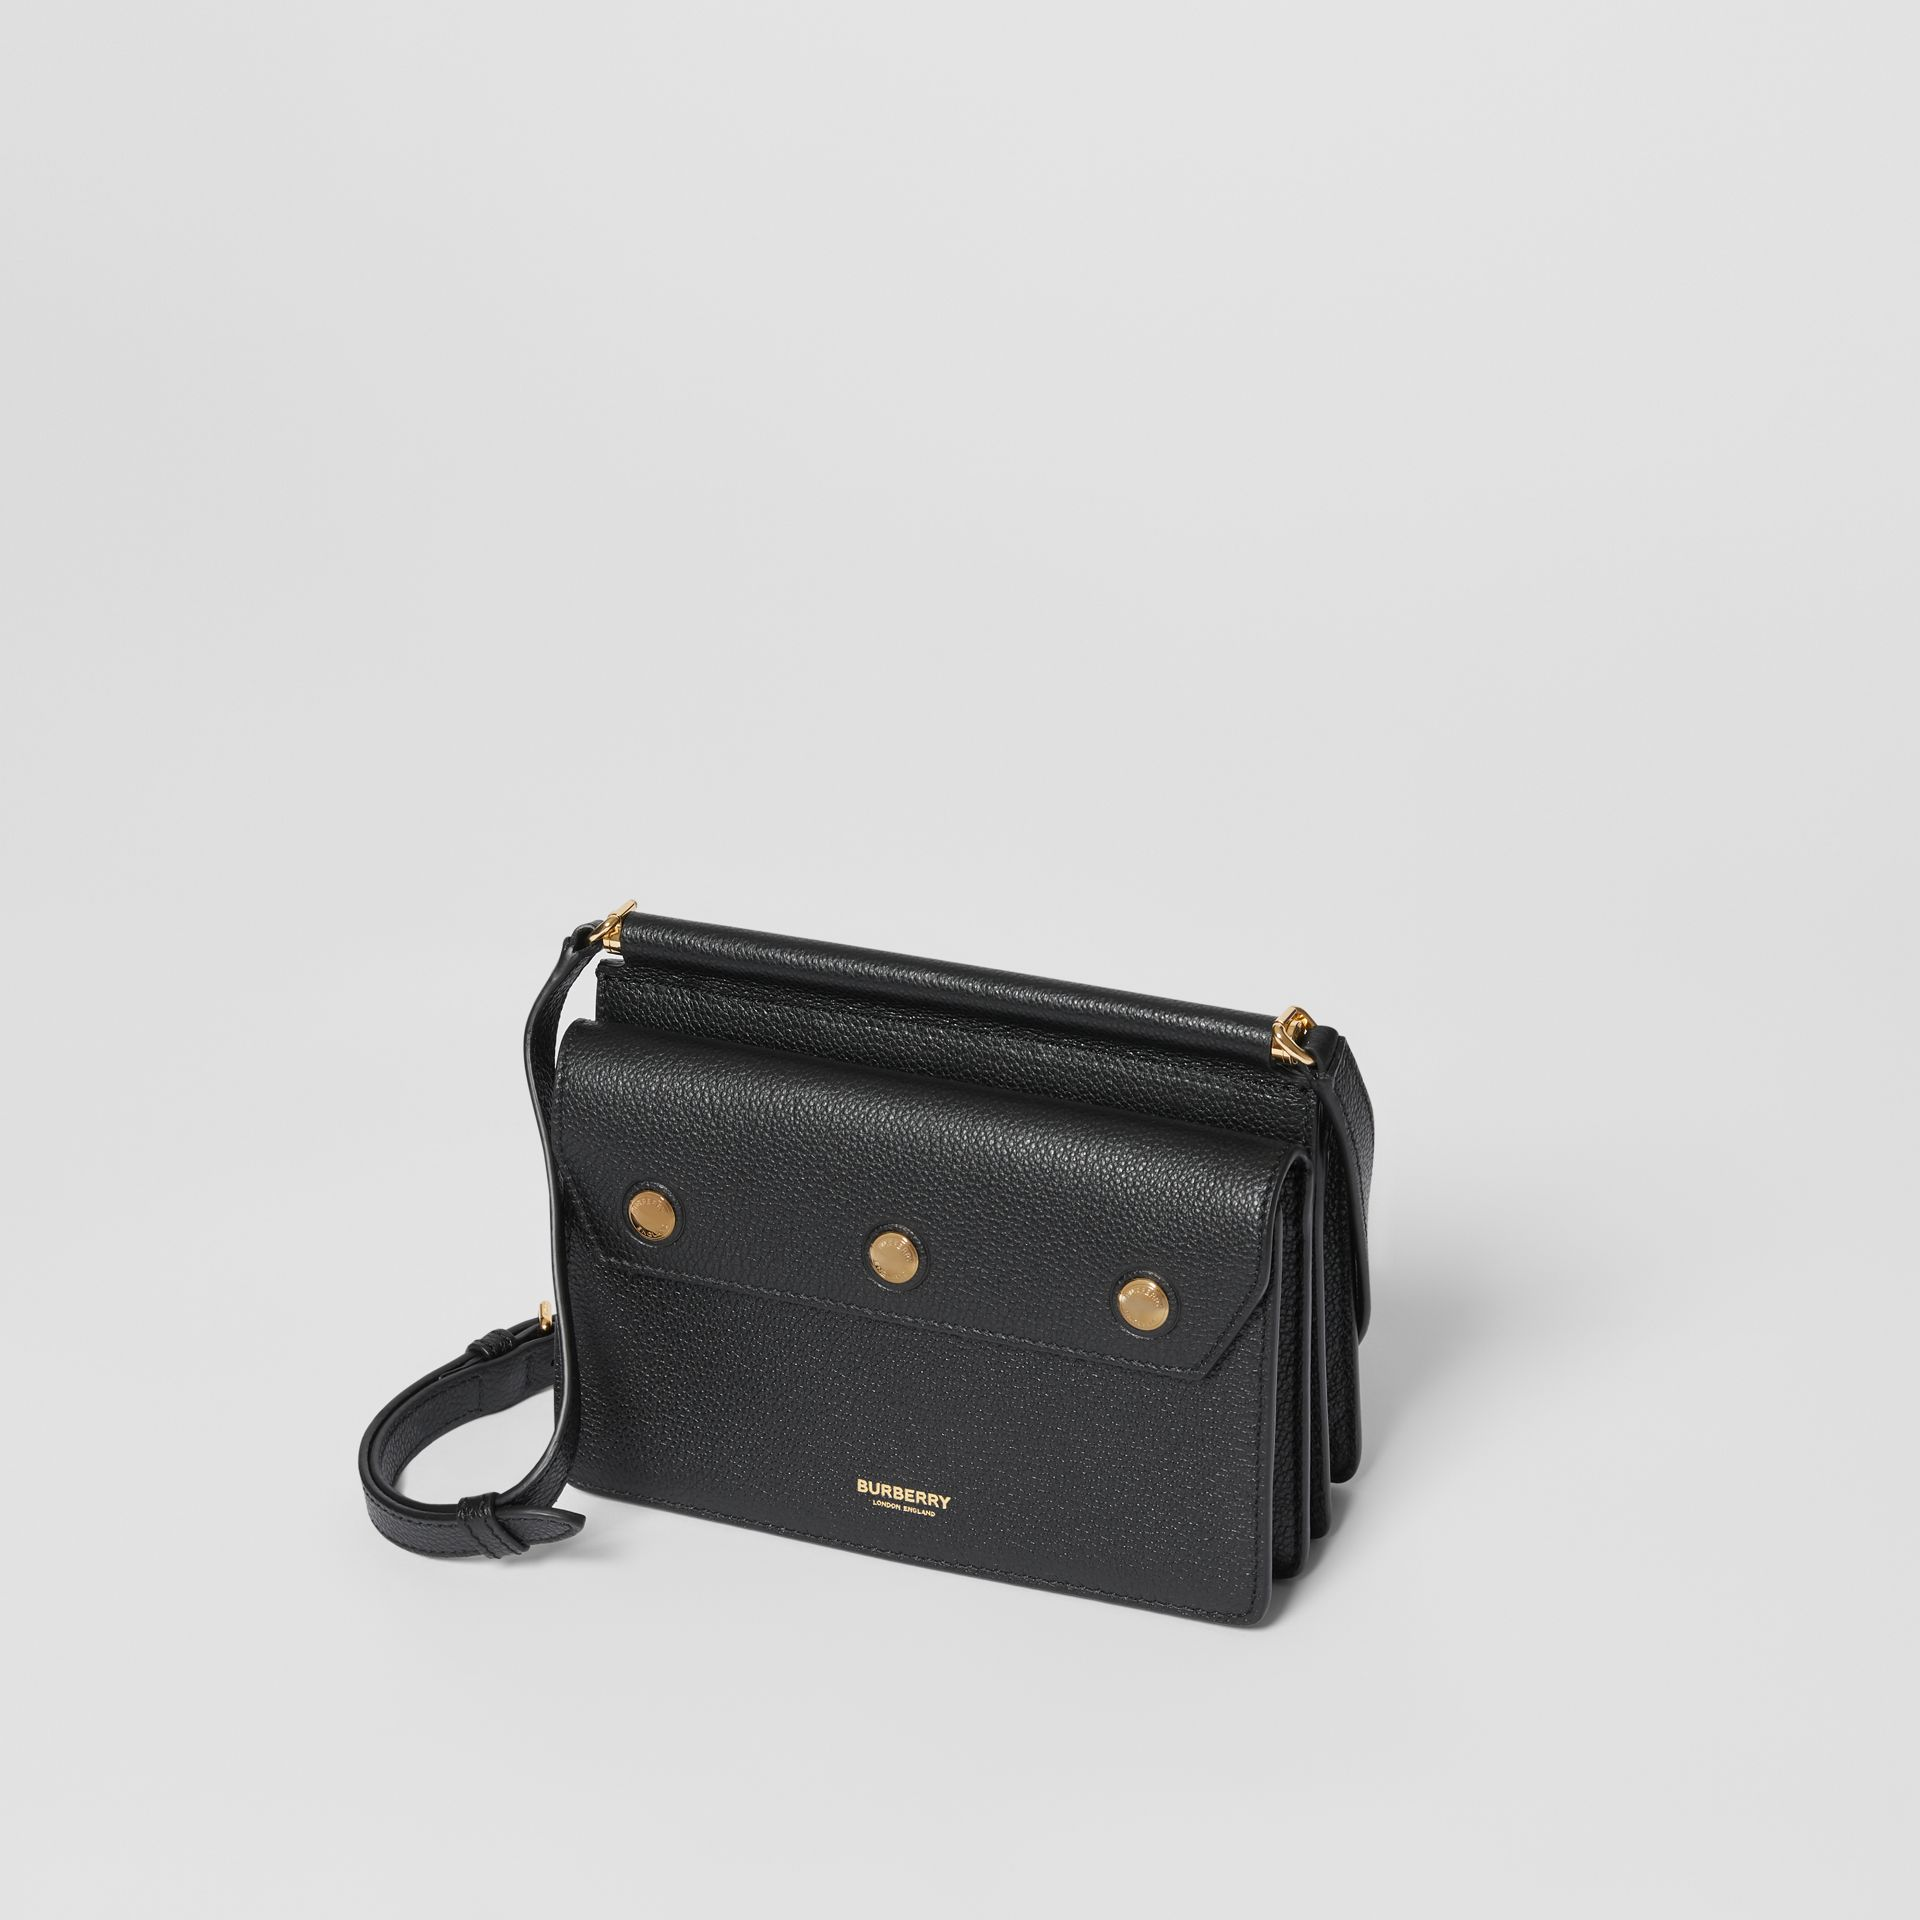 Mini Leather Title Bag in Black - Women | Burberry - gallery image 3